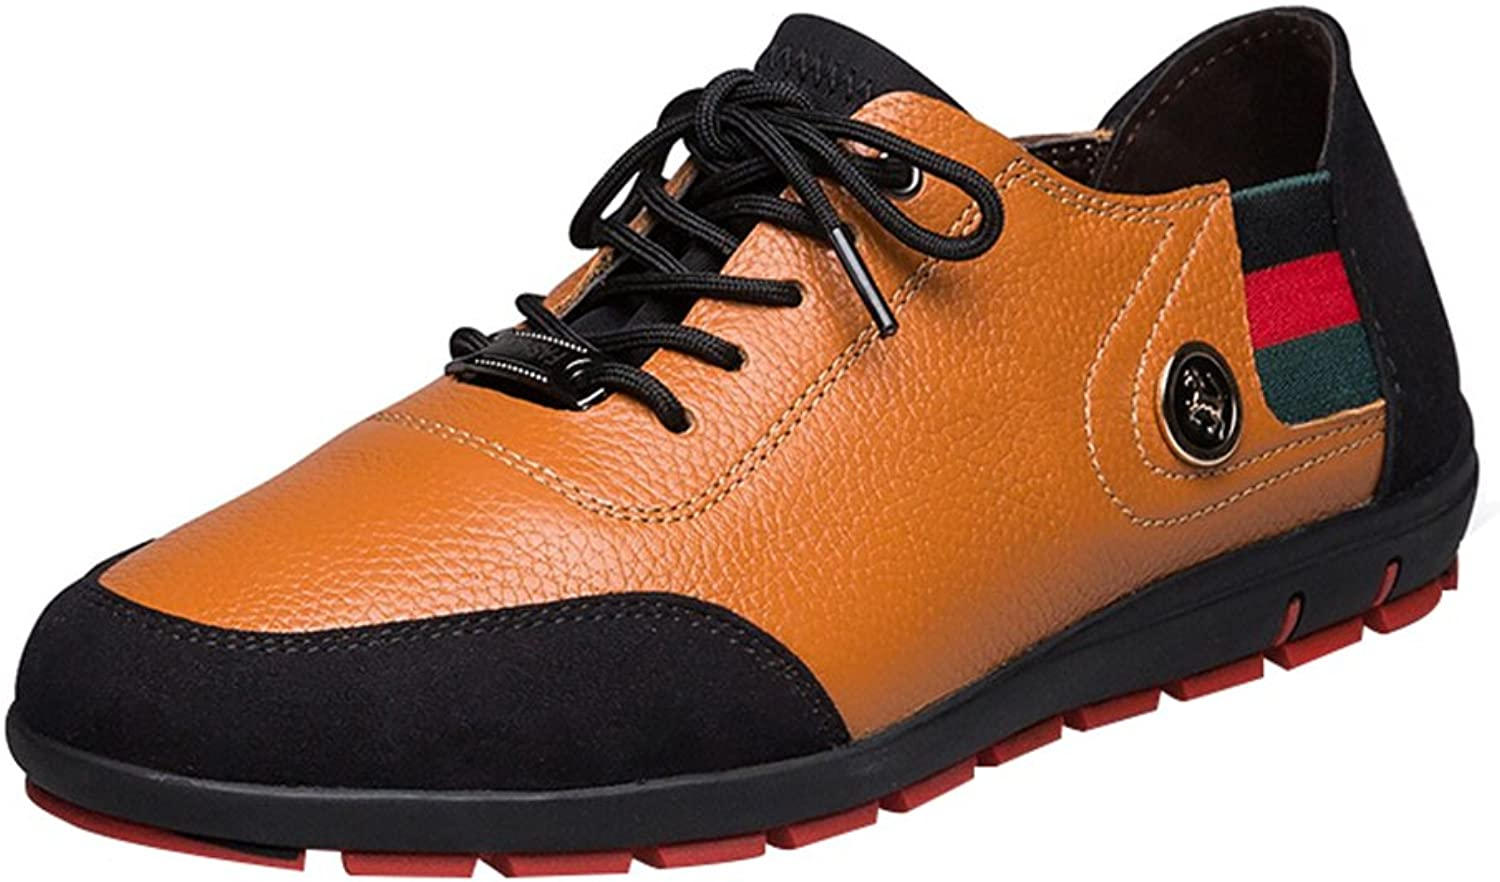 Snowman Lee Men's Genuine Leather Fashion Sneakers shoes